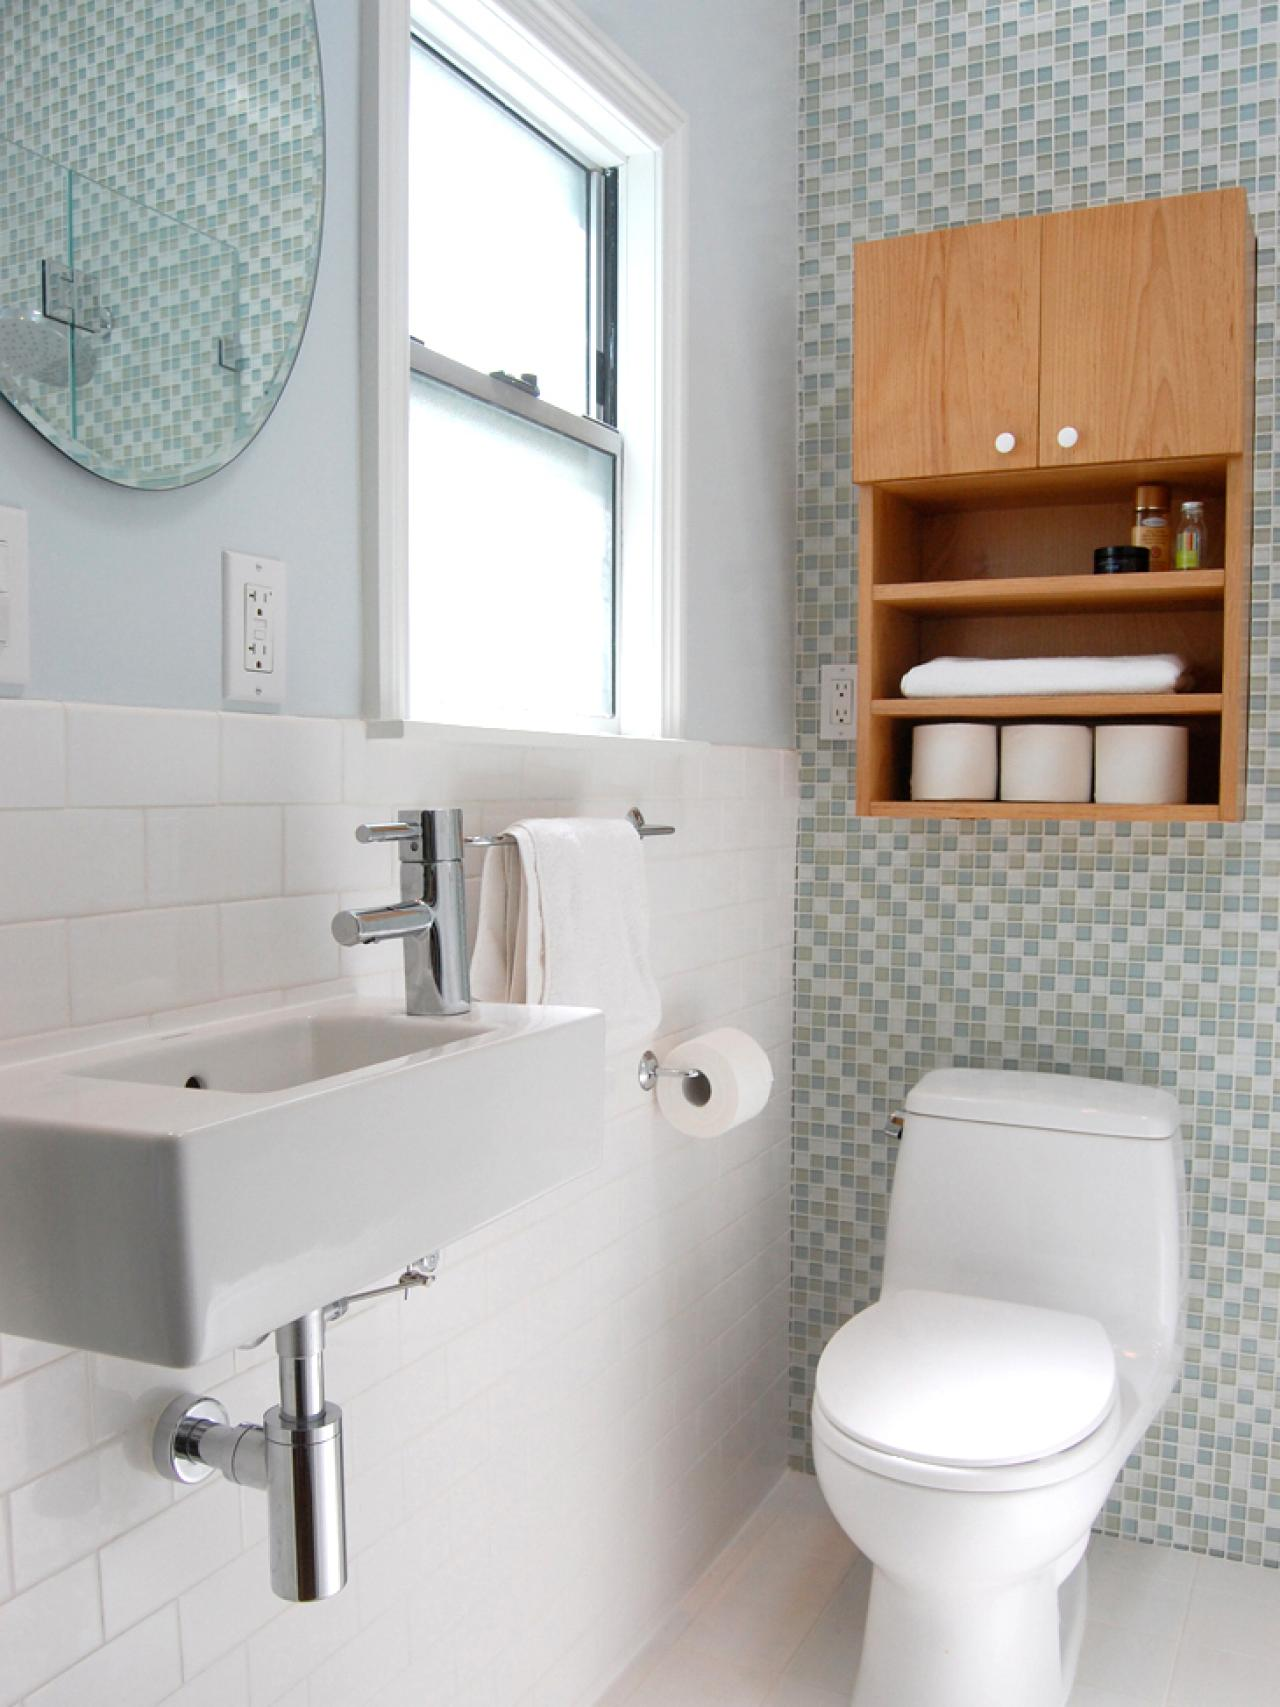 Small Bathroom Space Ideas – Small Bathroom Space